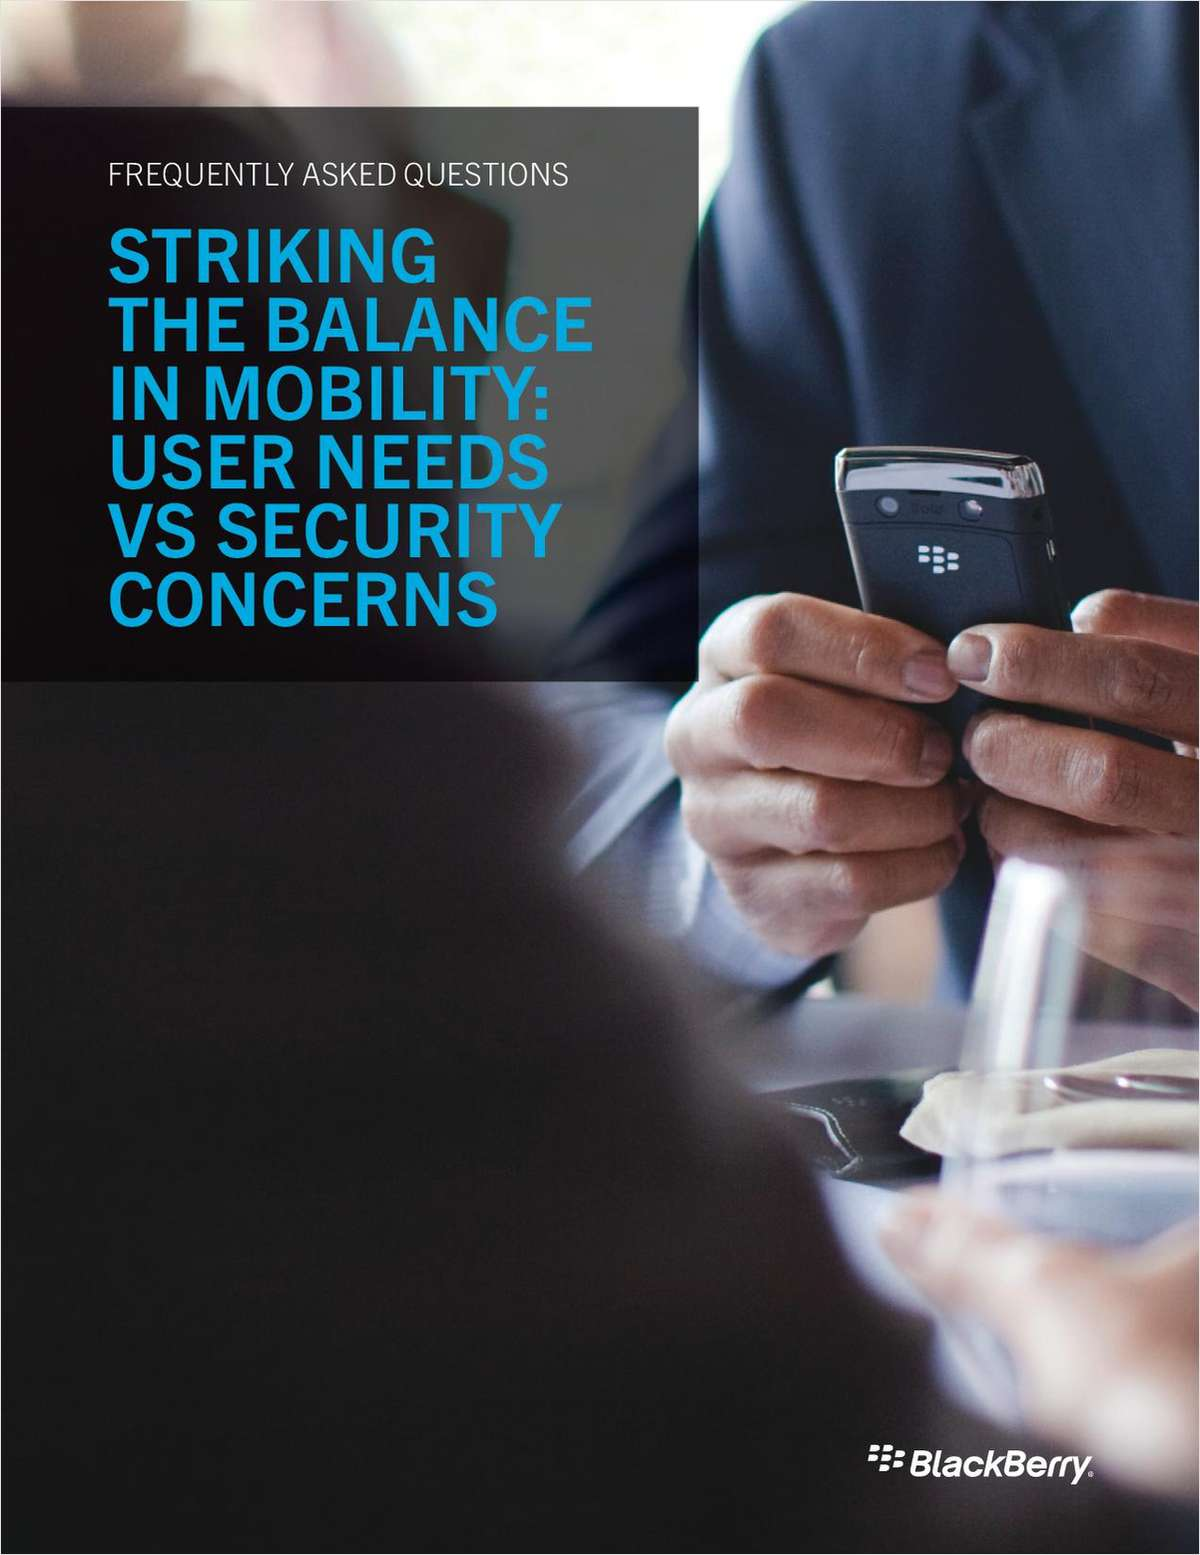 Striking the Balance in Mobility: User Needs VS Security Concerns (FAQs)